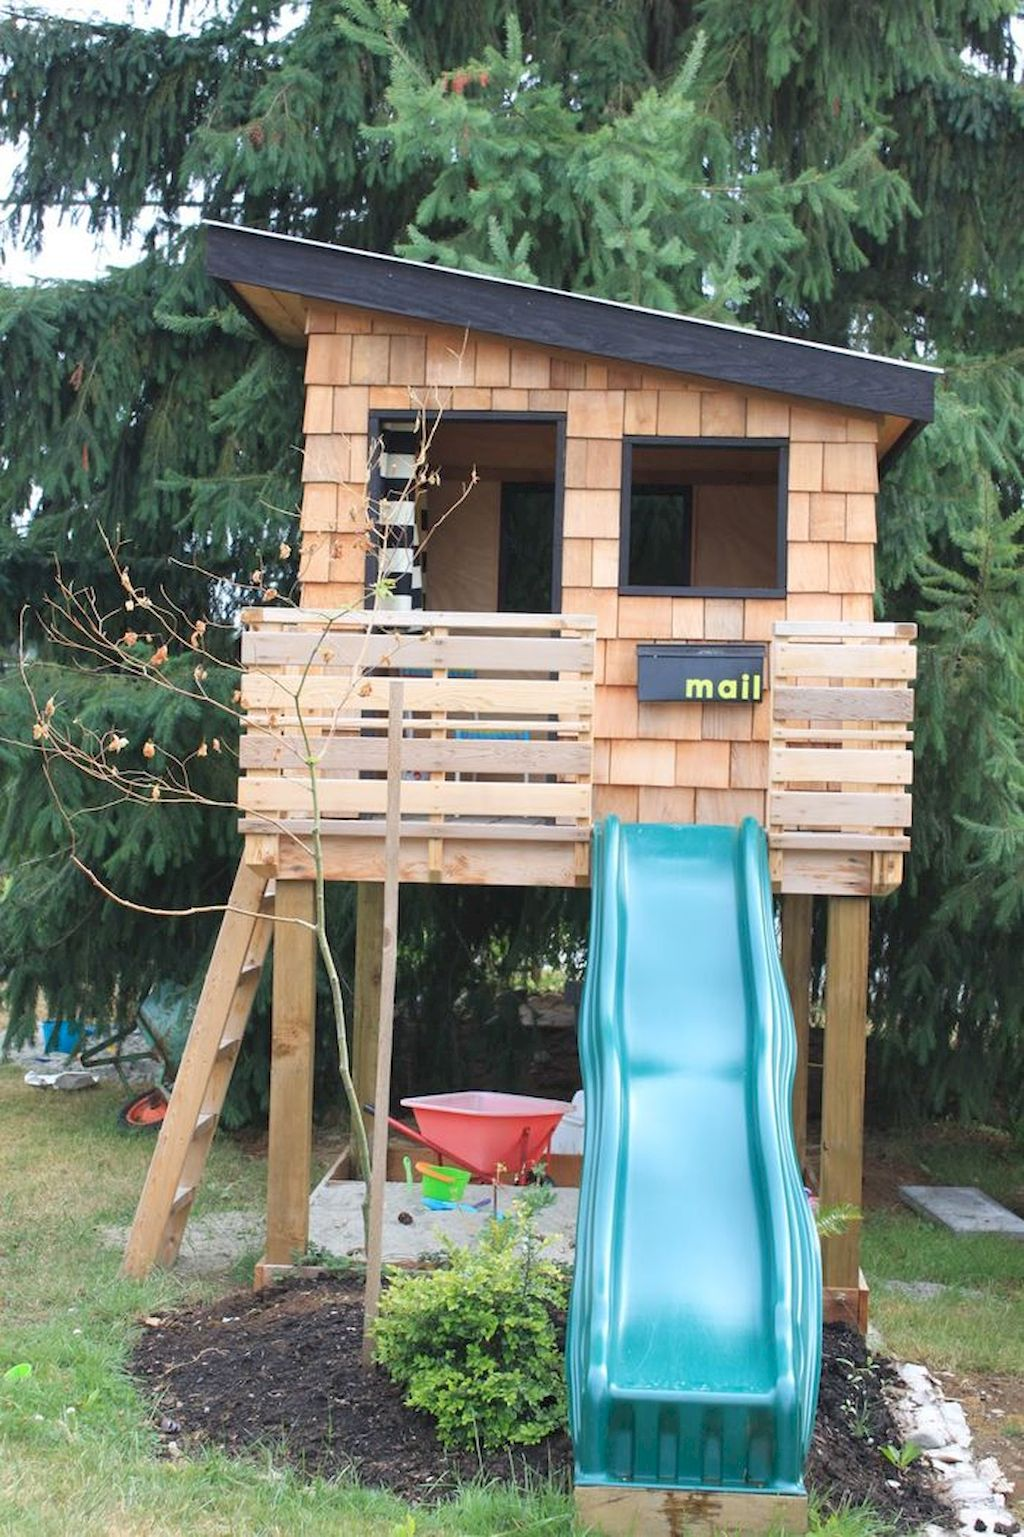 Marvelous Playhouse Plan Into Your Existing Backyard Space